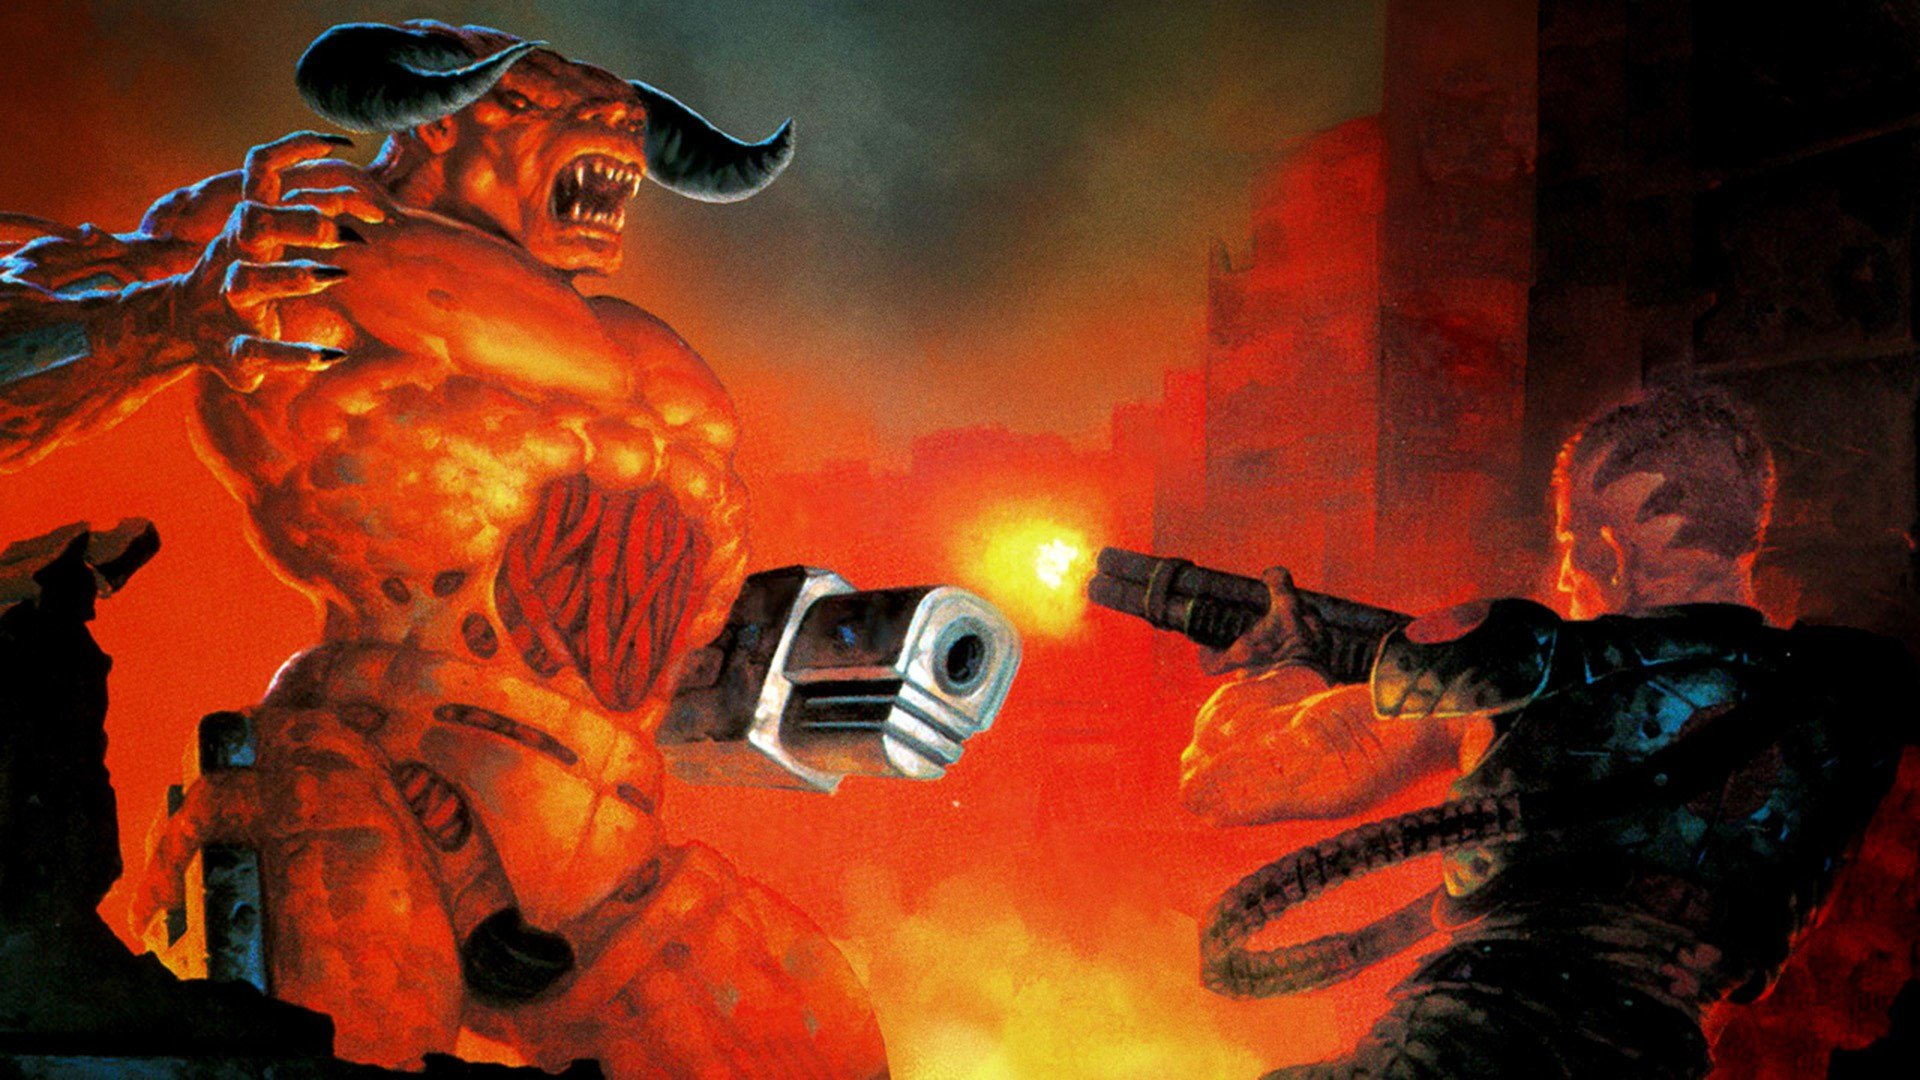 Doom 1, 2, and 3 are all under $3 on Switch right now screenshot